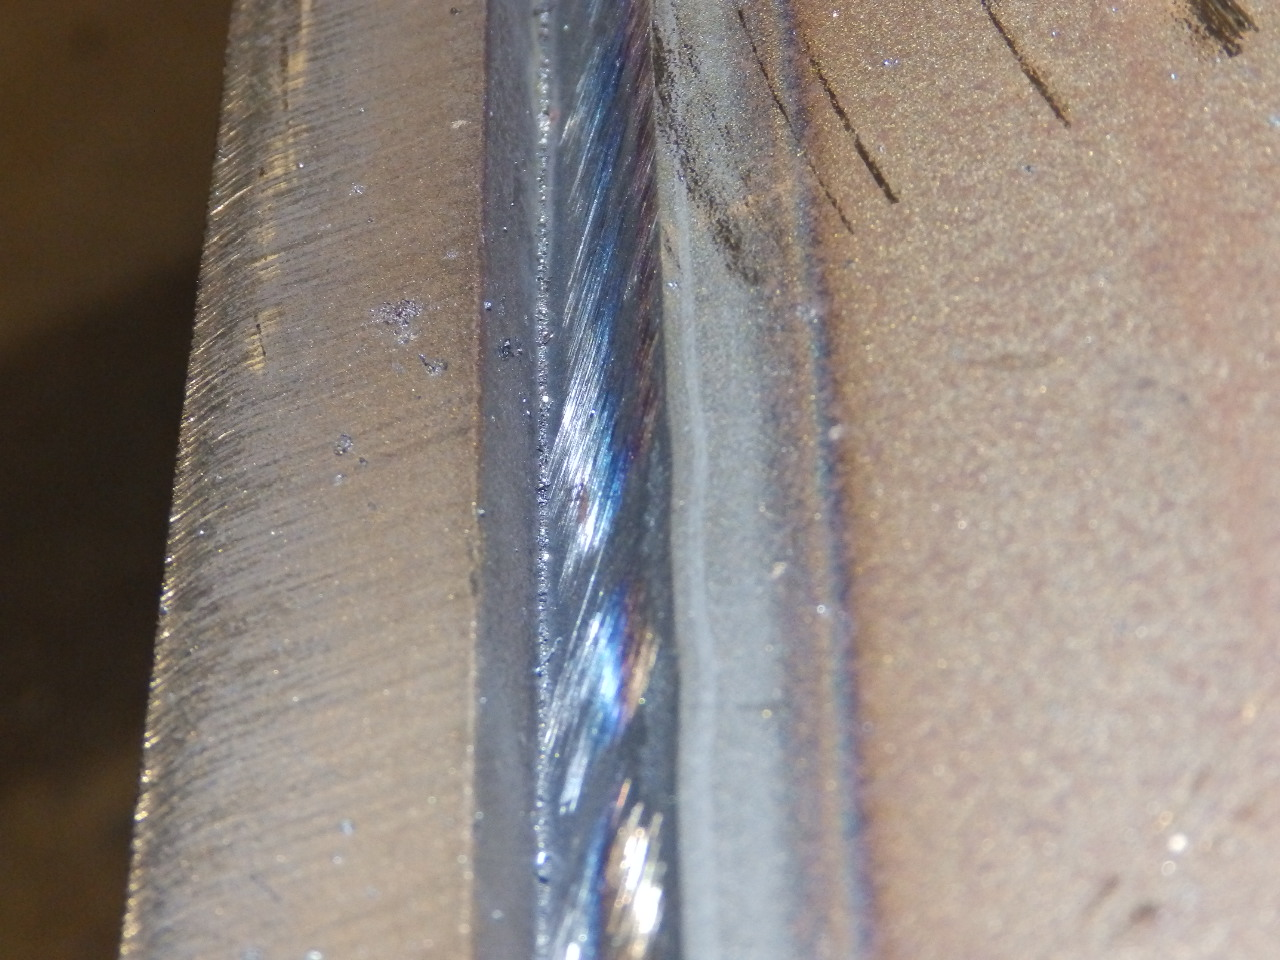 Large Fabrication Weld Joint Prior to Plasma Gouging